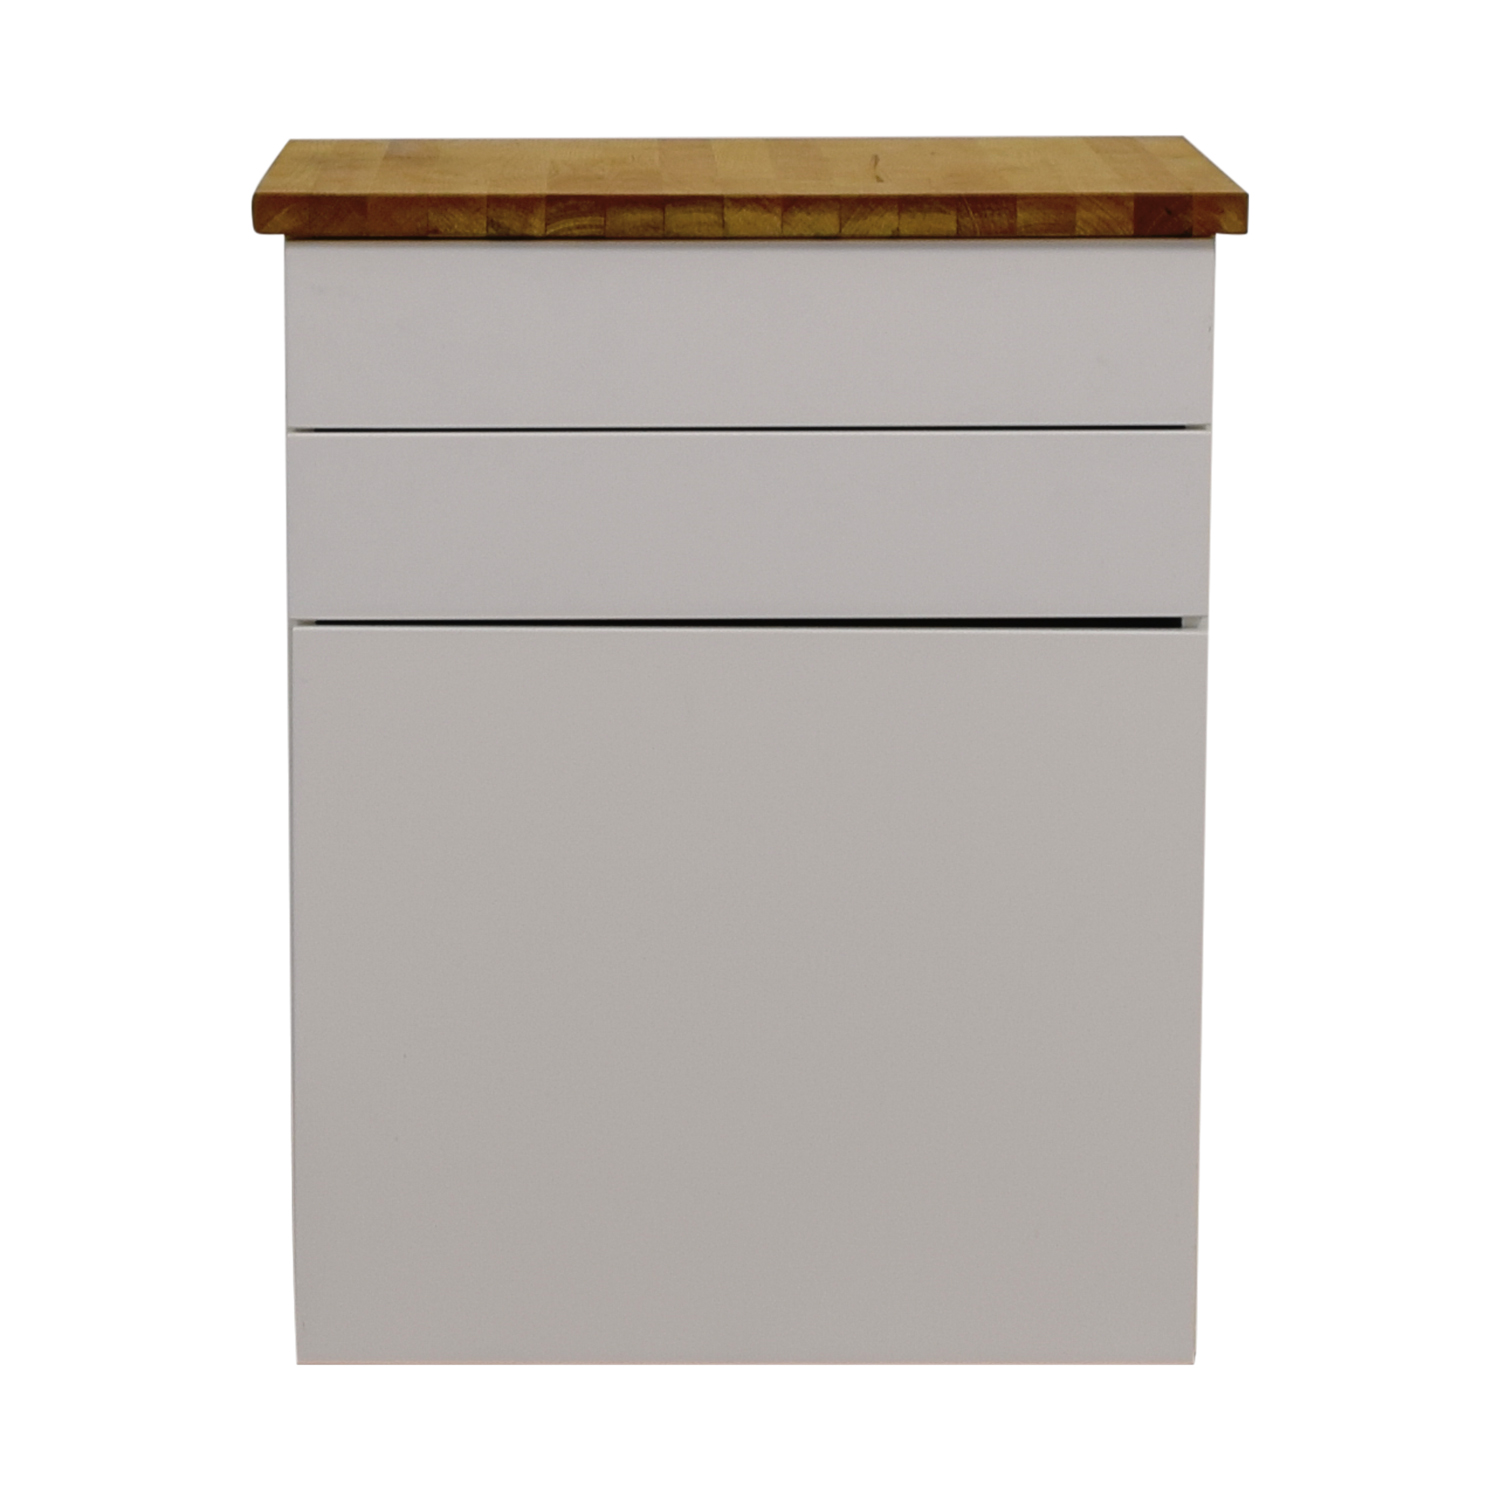 IKEA IKEA White Butcher Block Counter Cabinet With Two Drawers Nj ...